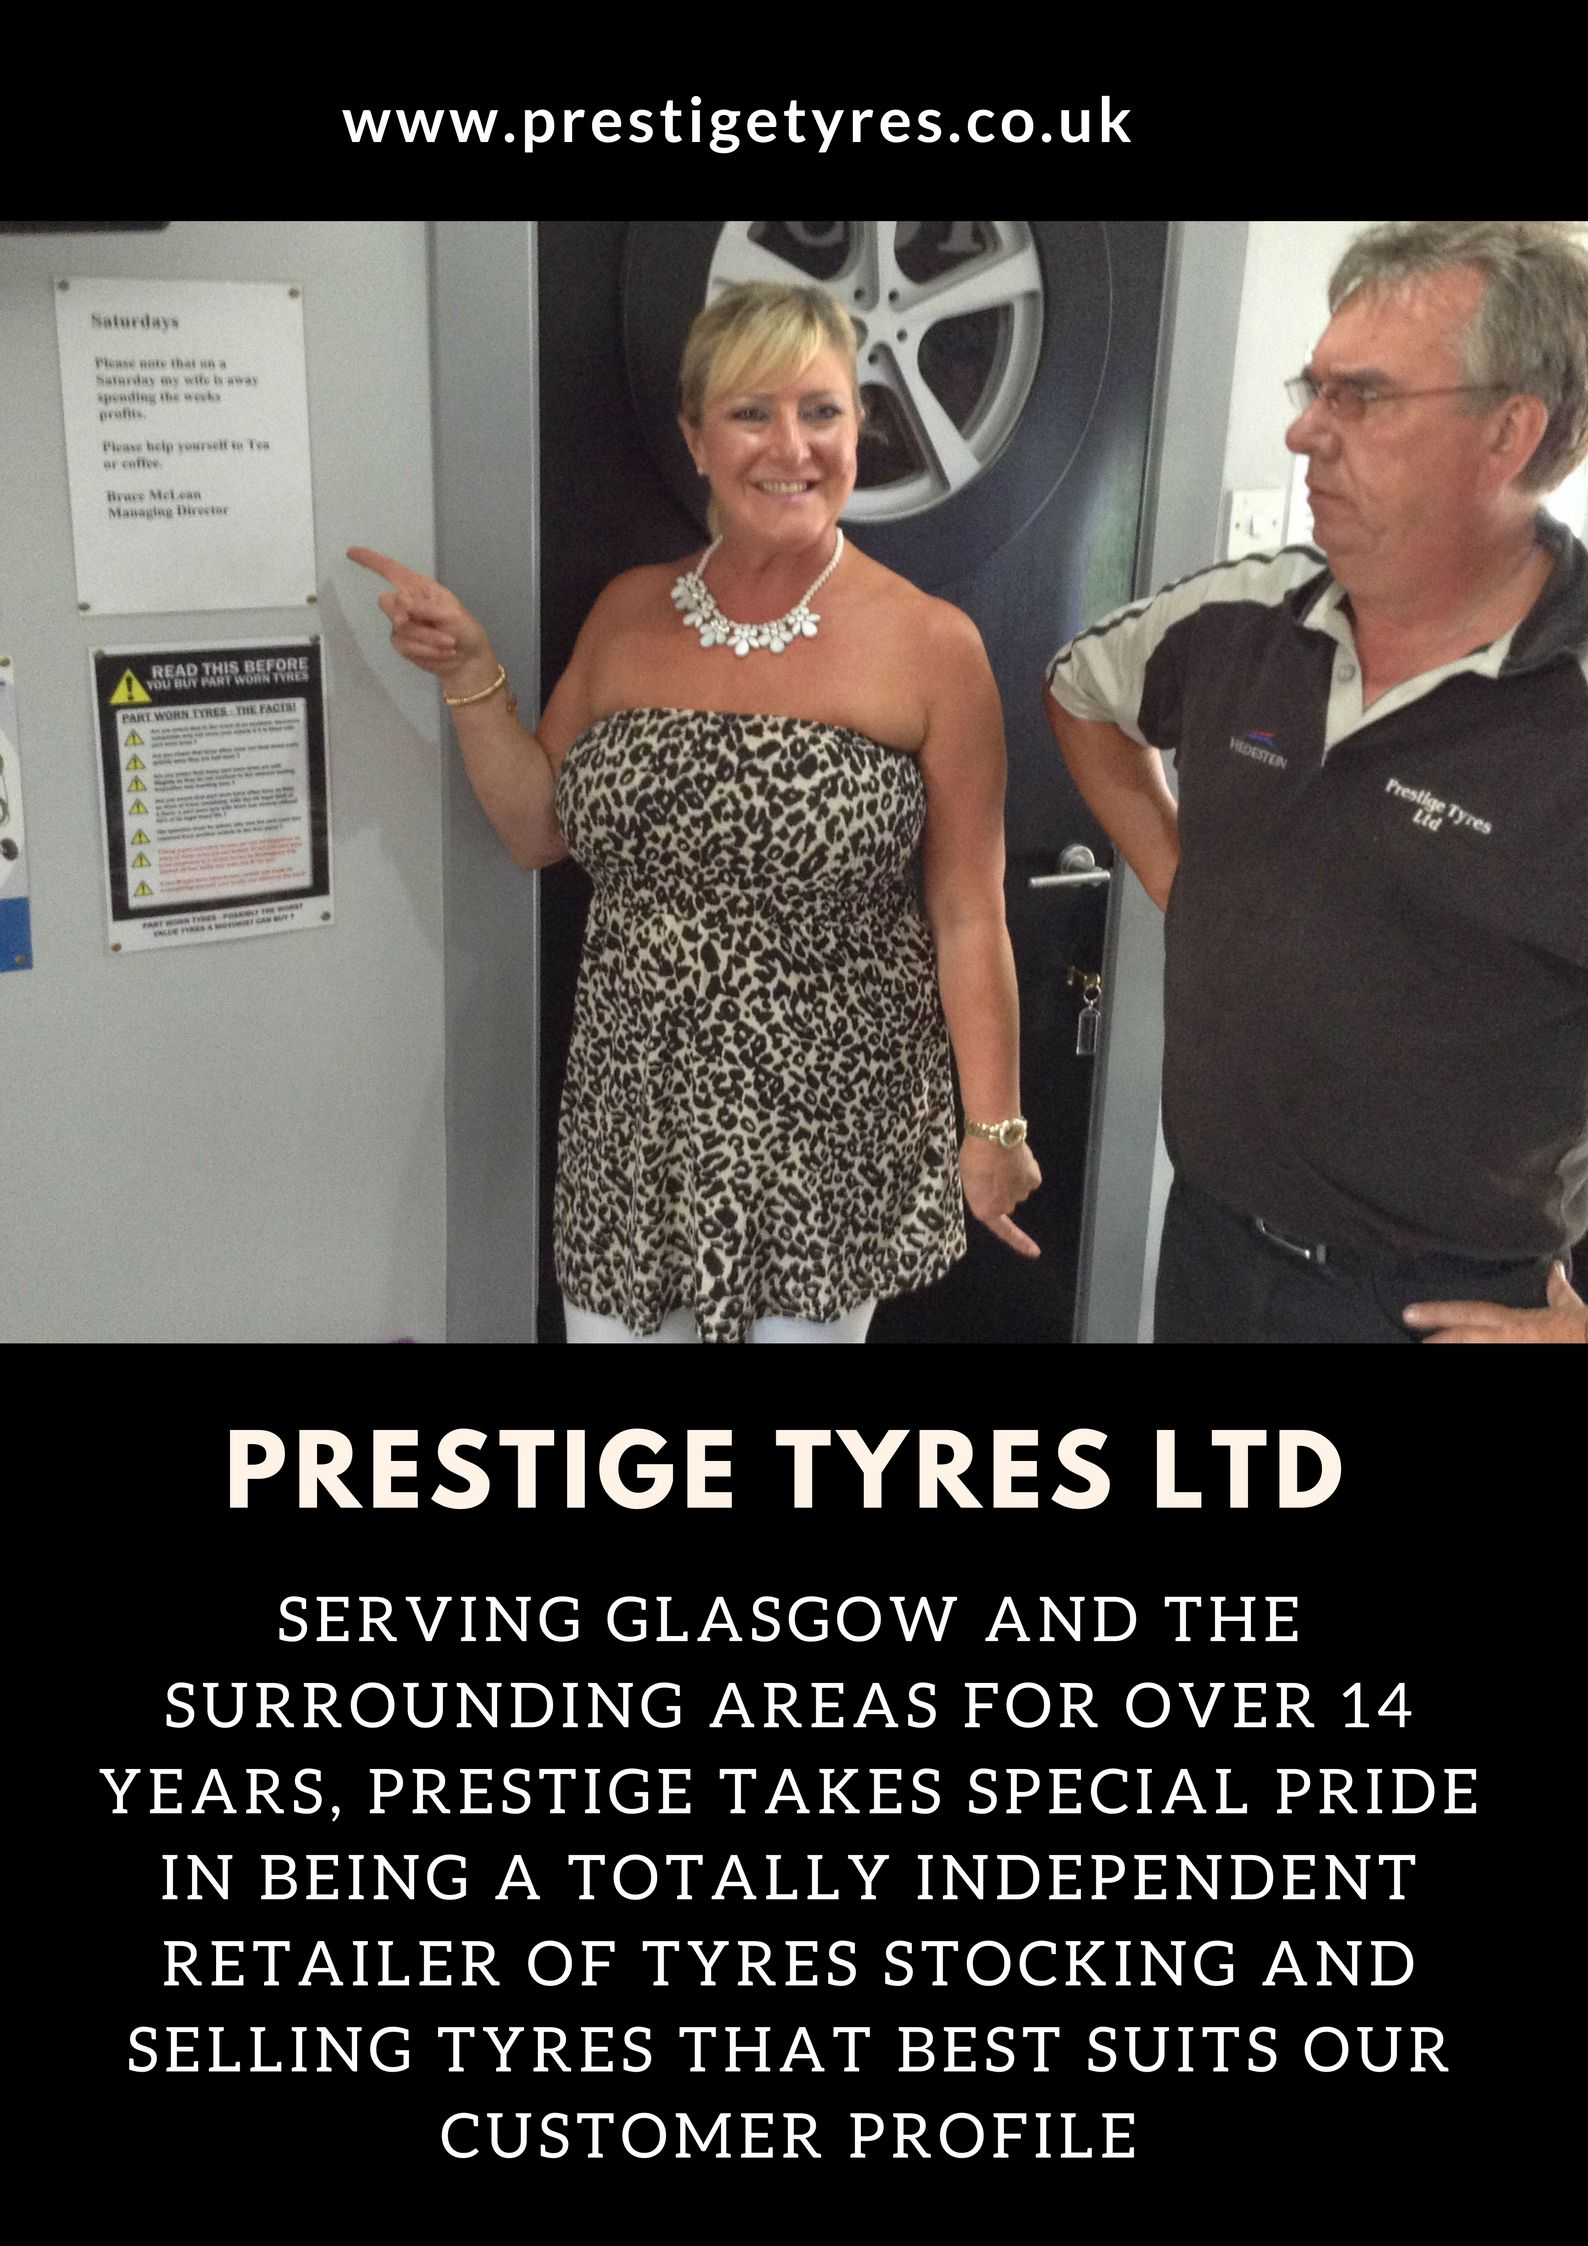 There Is No Substitute For Professional Guidance When It Comes To Unsafe Tyres The Prestige Tyres Ltd Has Over 14 Years Of Ex The Prestige Glasgow Cool Suits